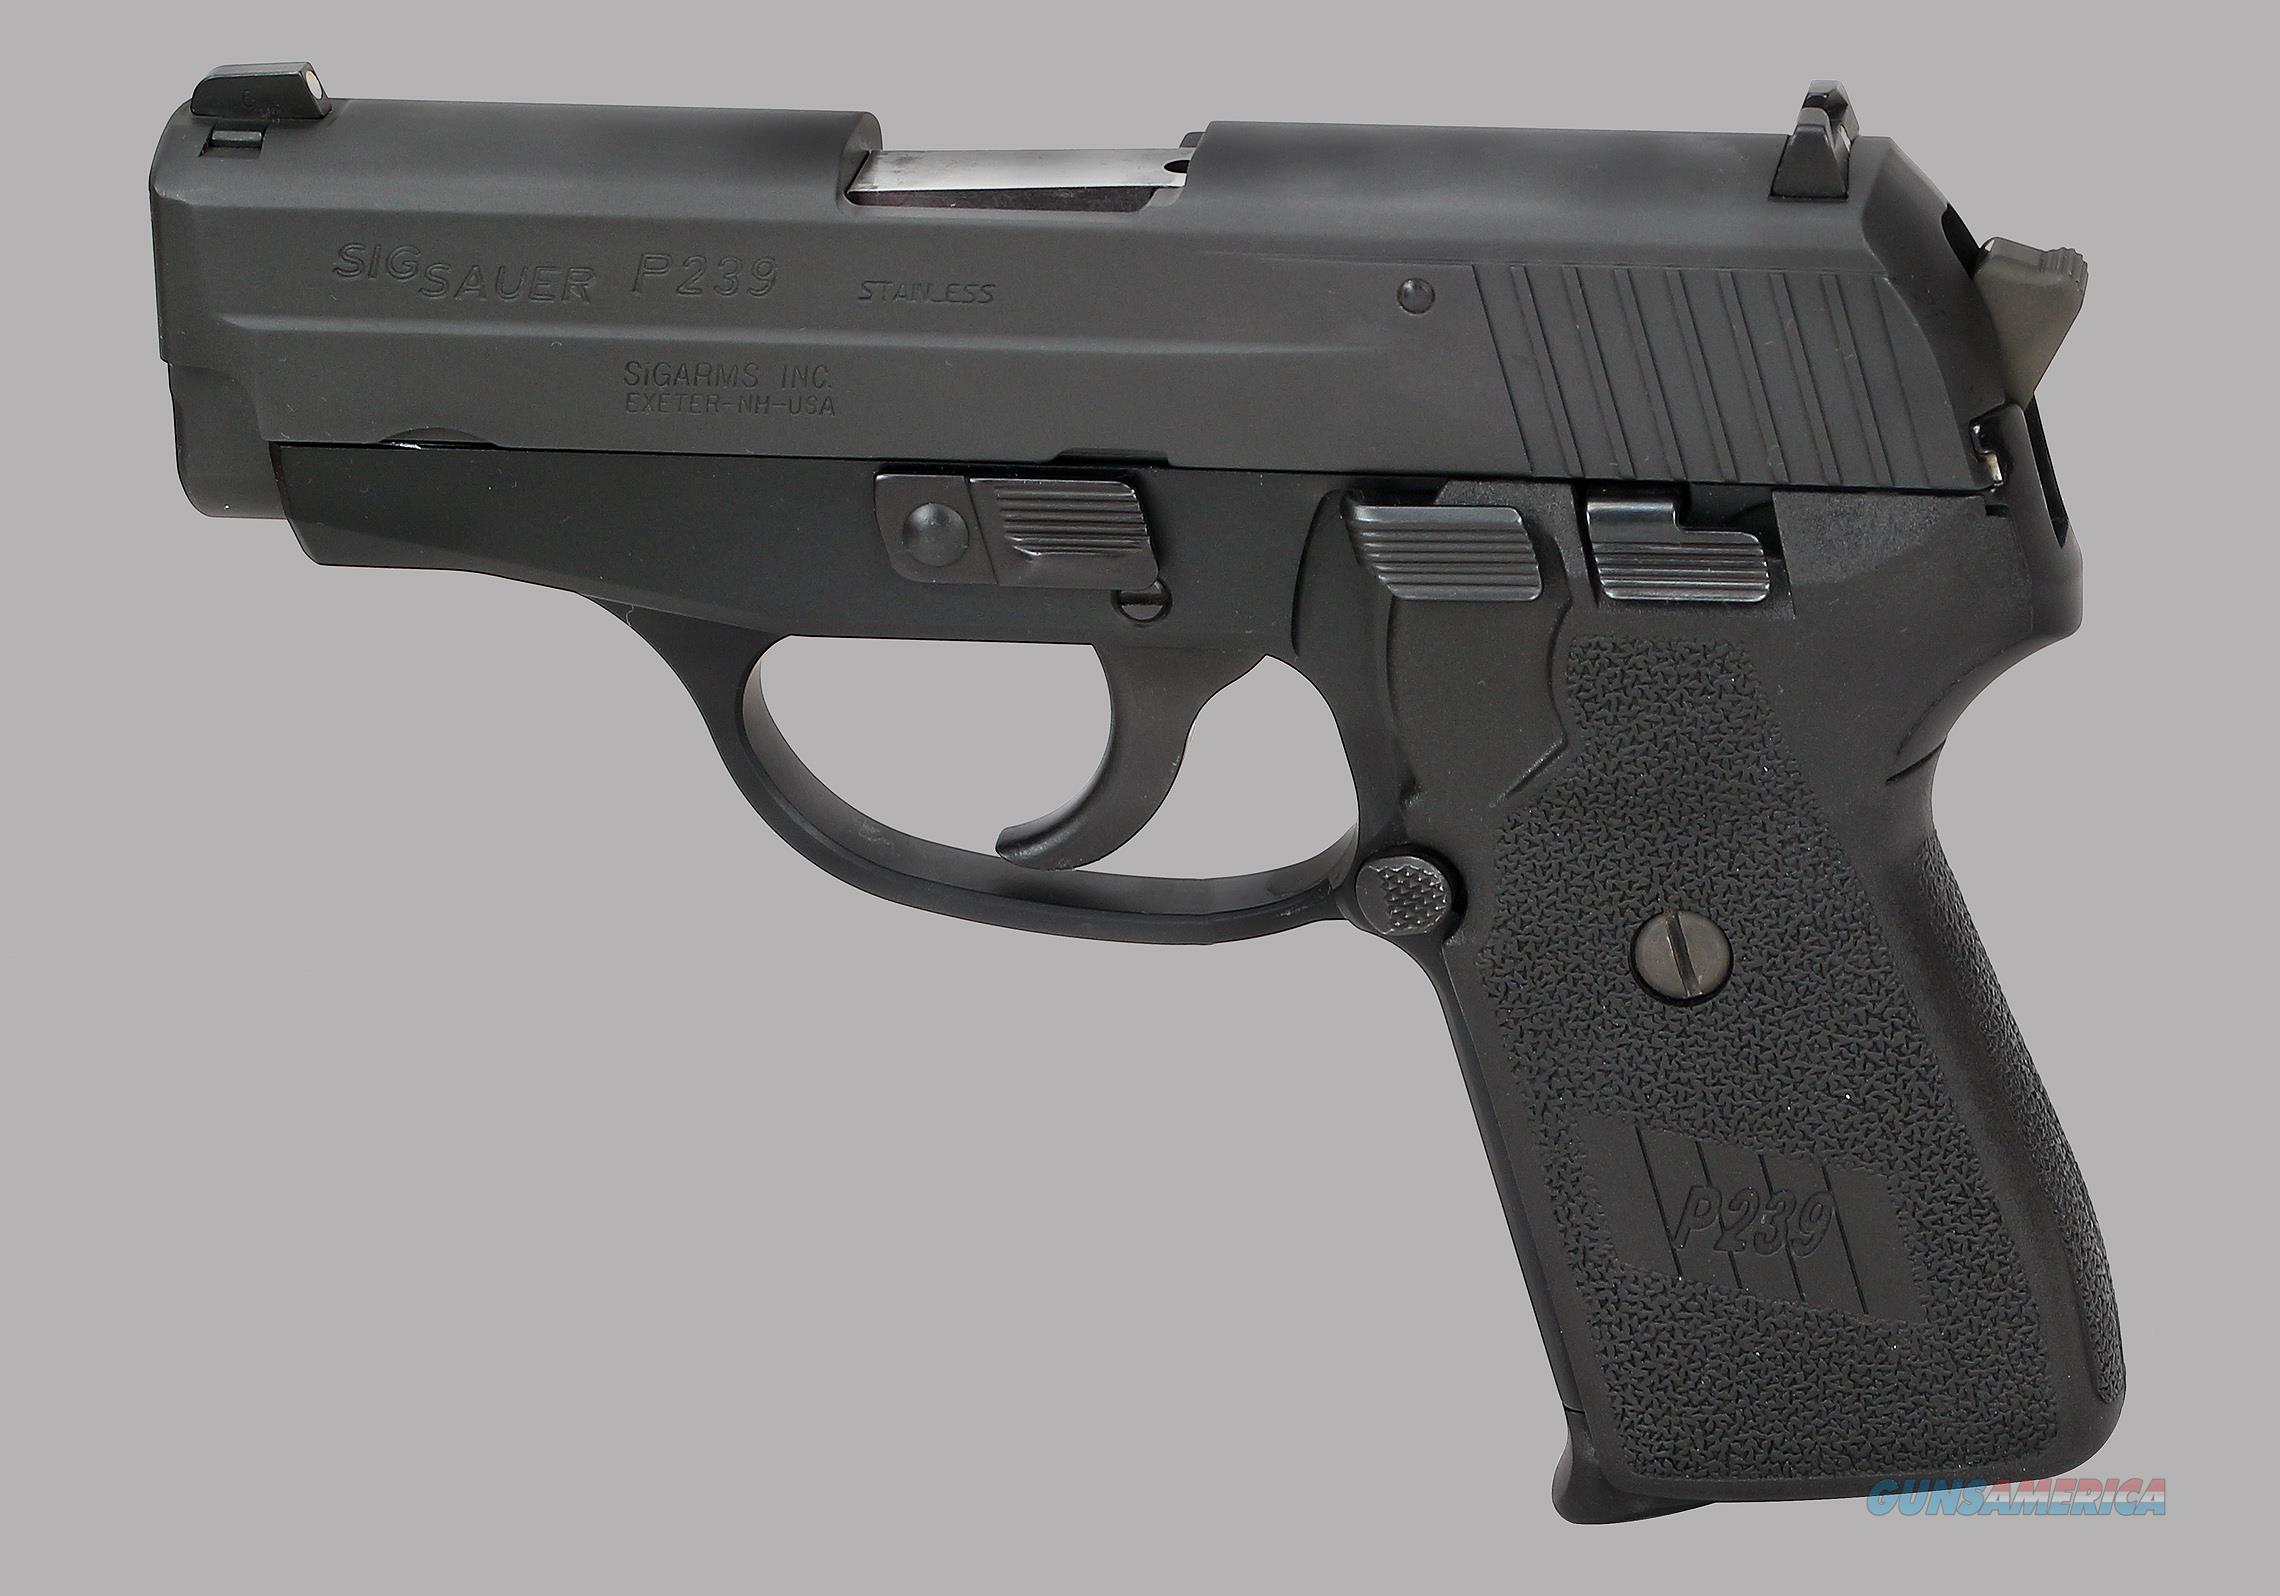 Sigarms 40cal S&W P239 Pistol  Guns > Pistols > Sig - Sauer/Sigarms Pistols > P239